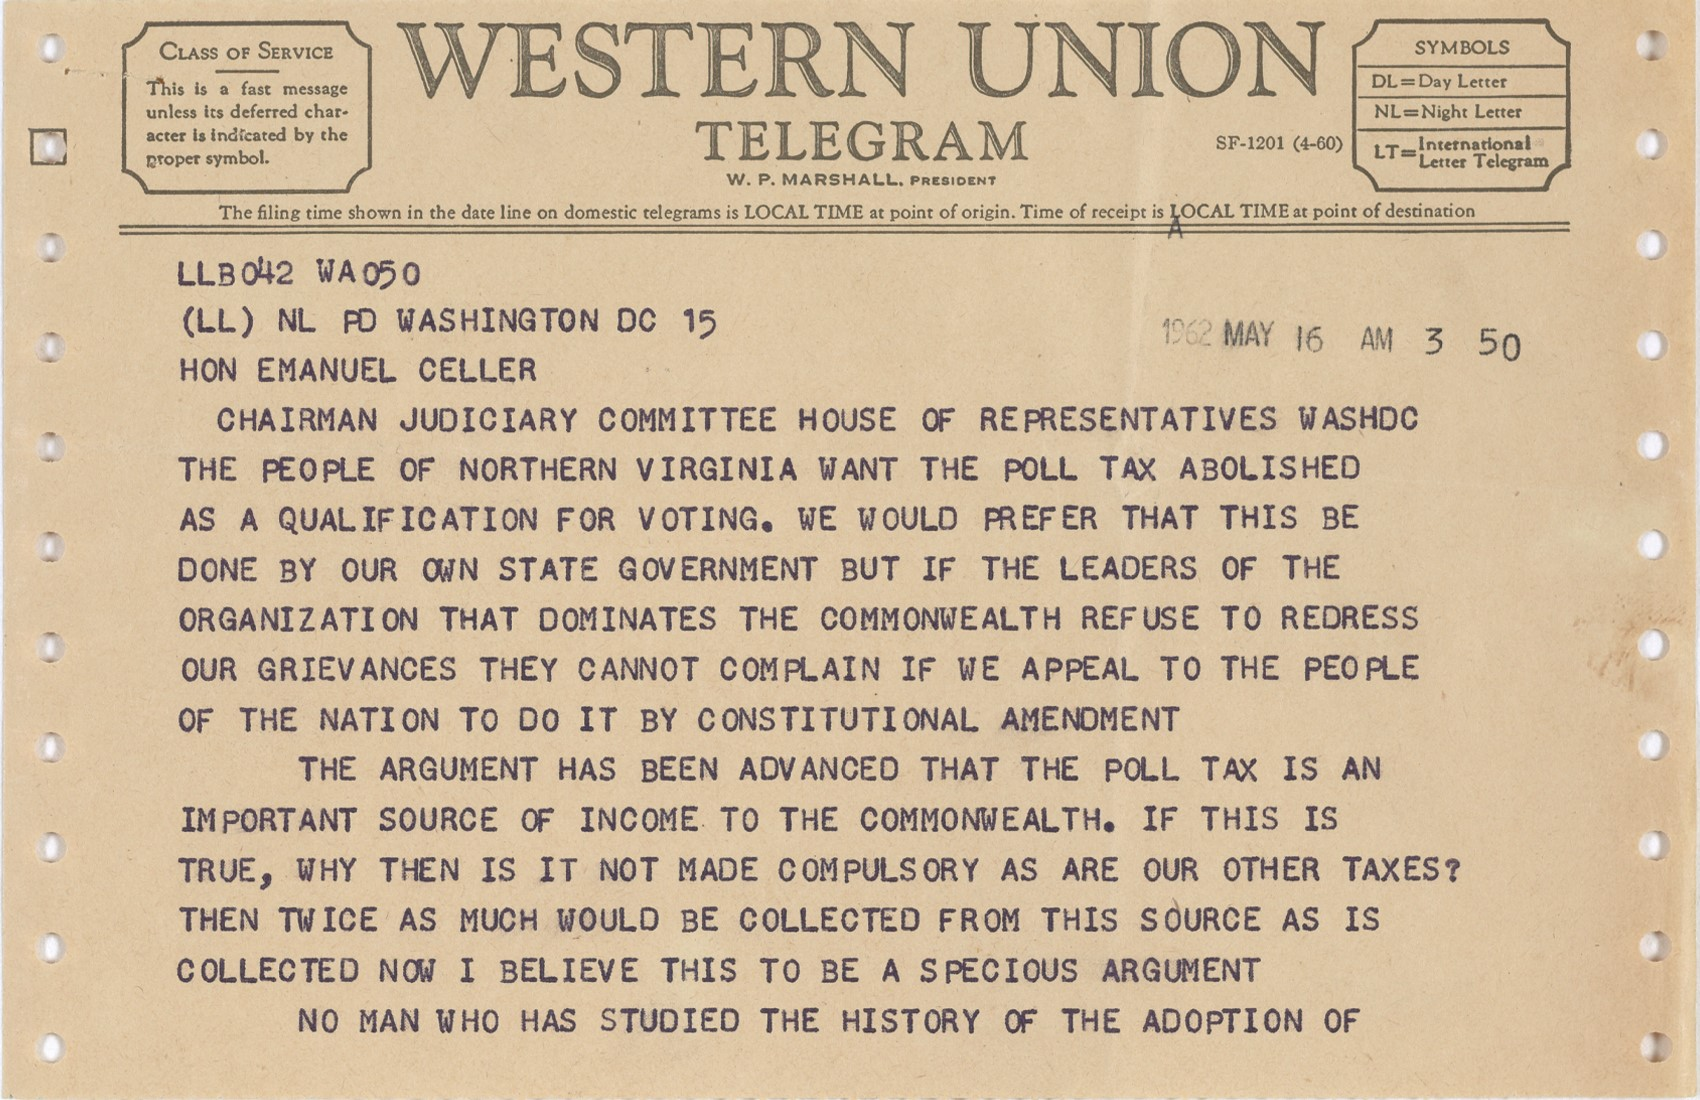 Telegram from Augustus C. Johnson in Favor of Abolition of the Poll Tax, page 1, 1962